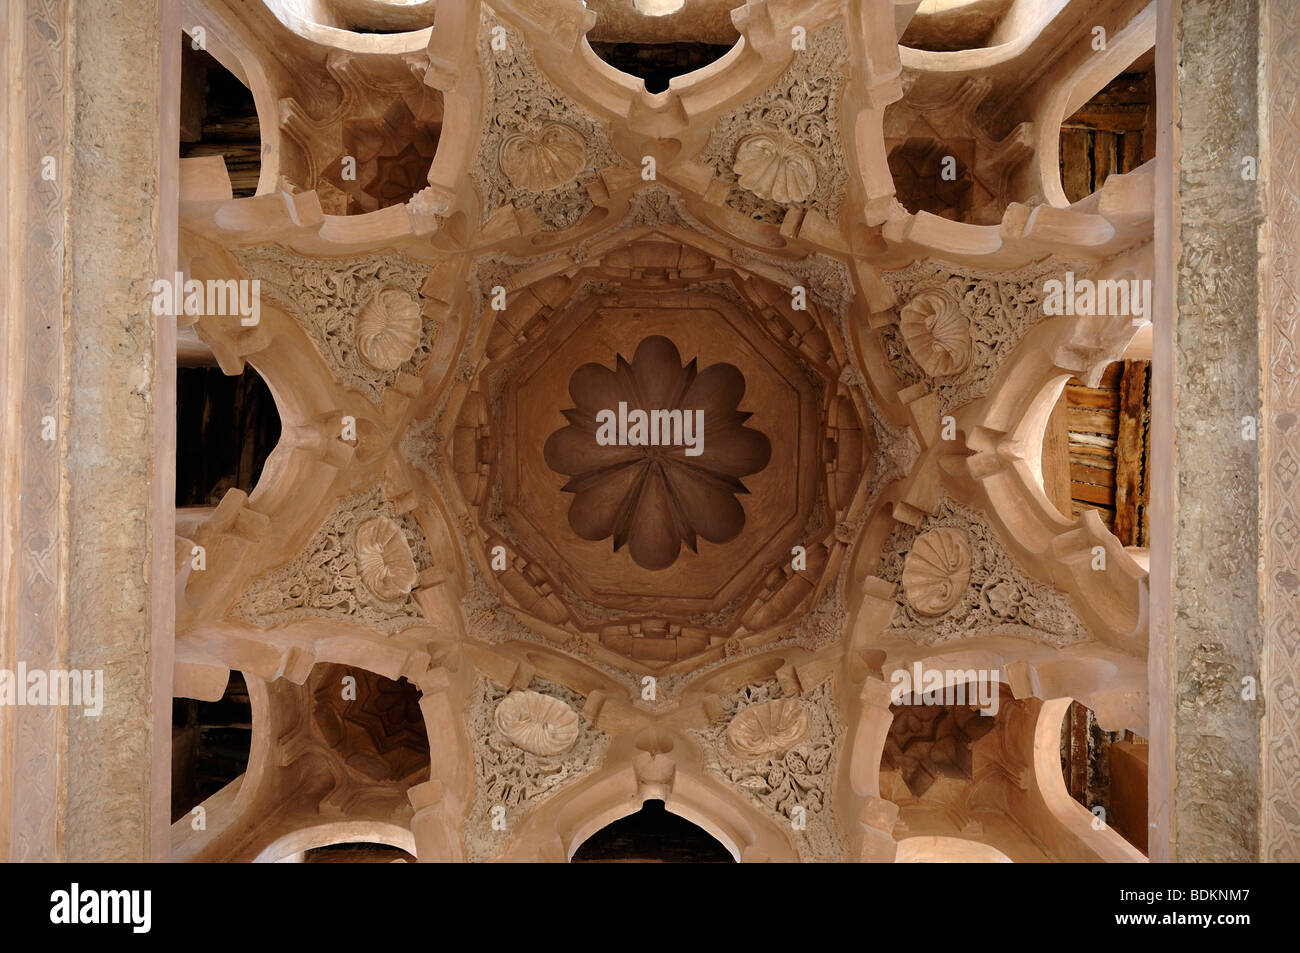 Decorated Dome Ceiling with Carved Arabesques of the Koubba Ba'adiyn Almoravid (c12th), Ablutions Fountain, - Stock Image